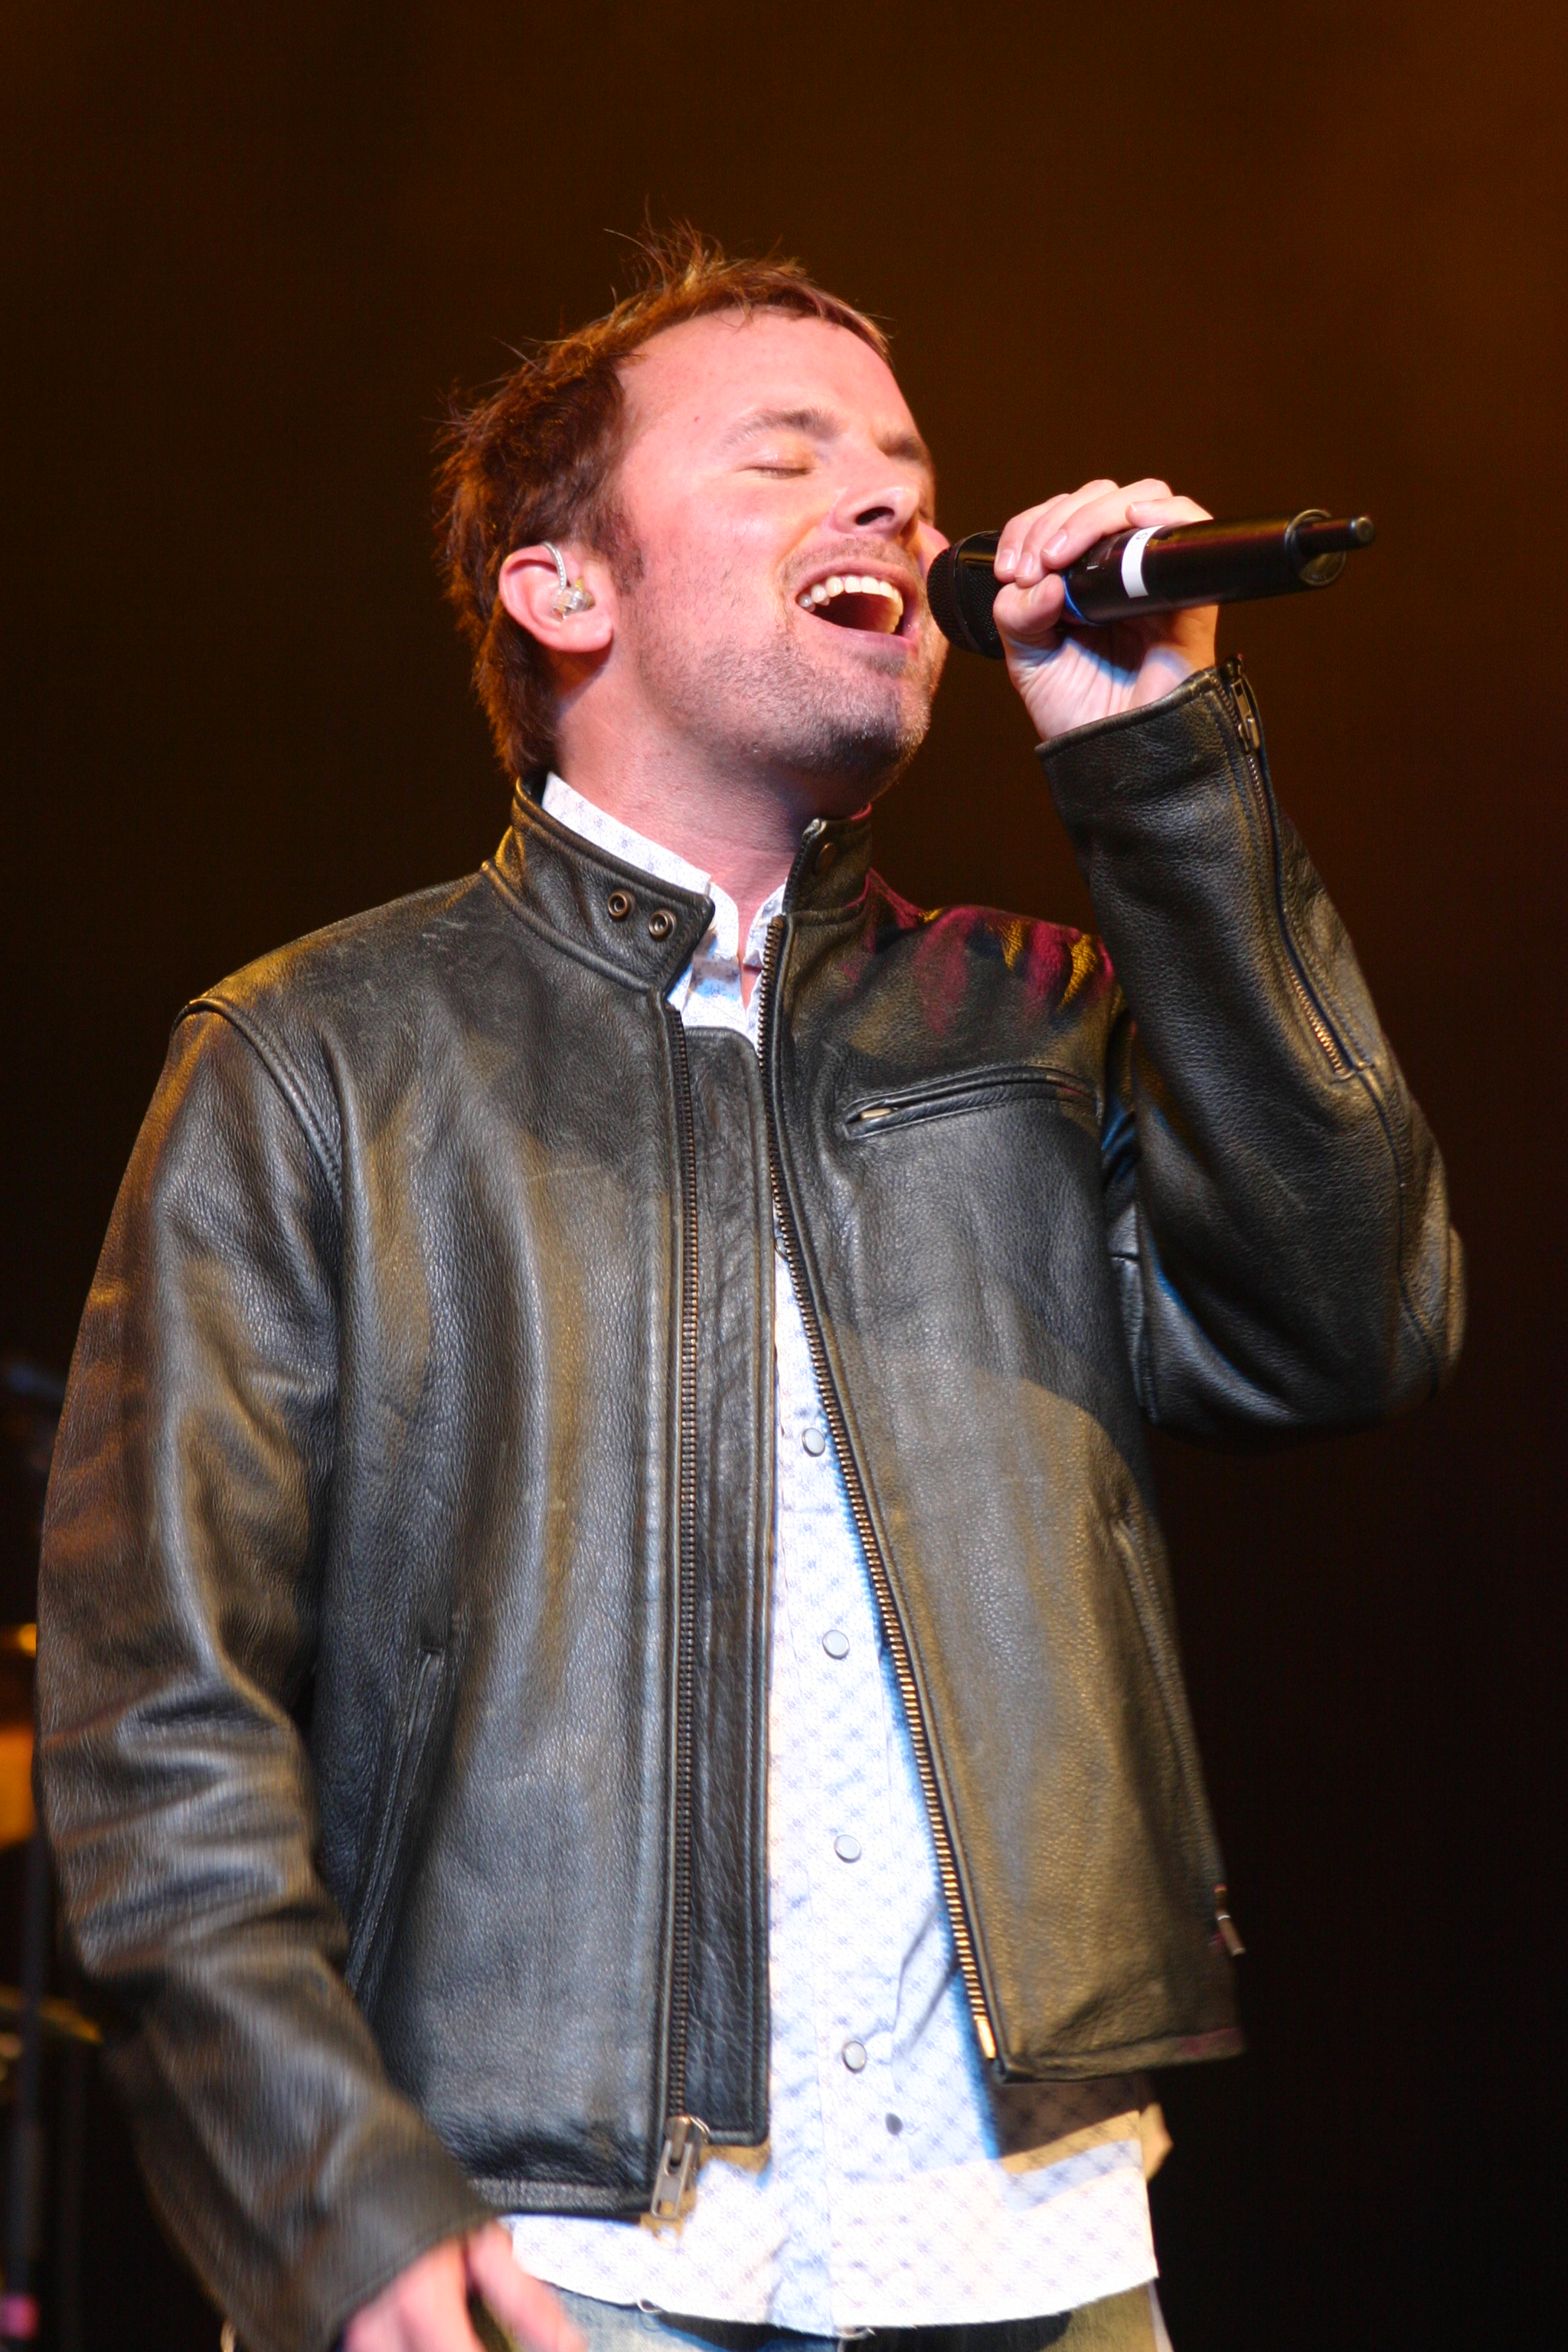 What did Chris Tomlin ever do to you? or: Why I criticize a worship superstar